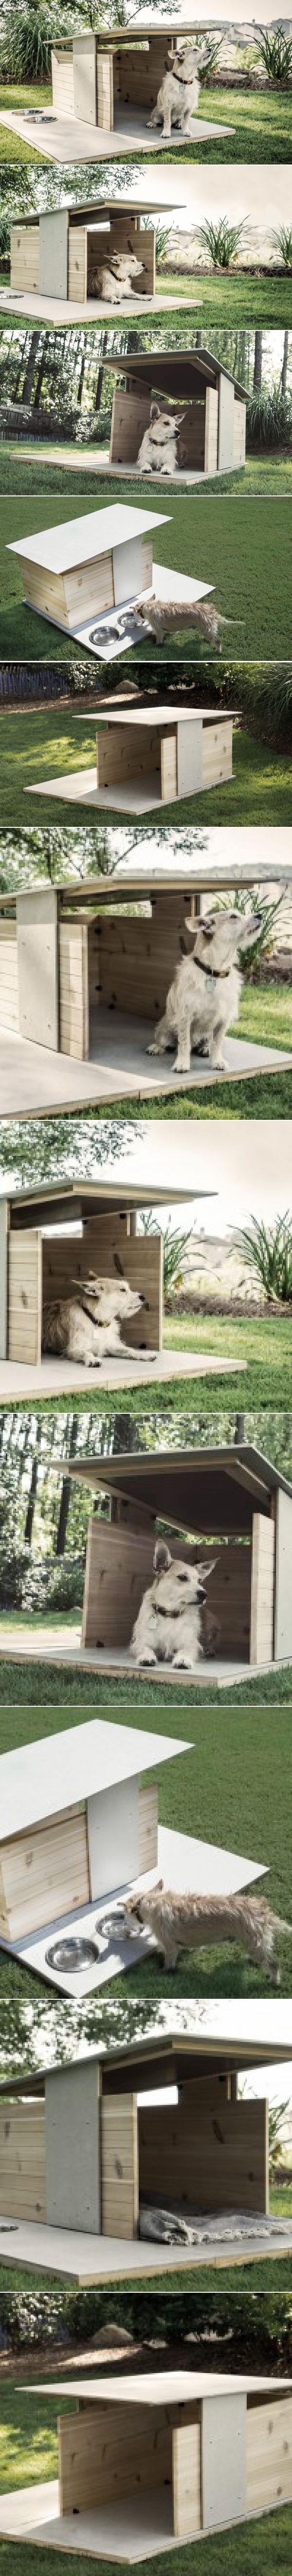 Two Atlanta-Based Designers Create An Architecturally Inspired Dog House | CONTEMPORIST